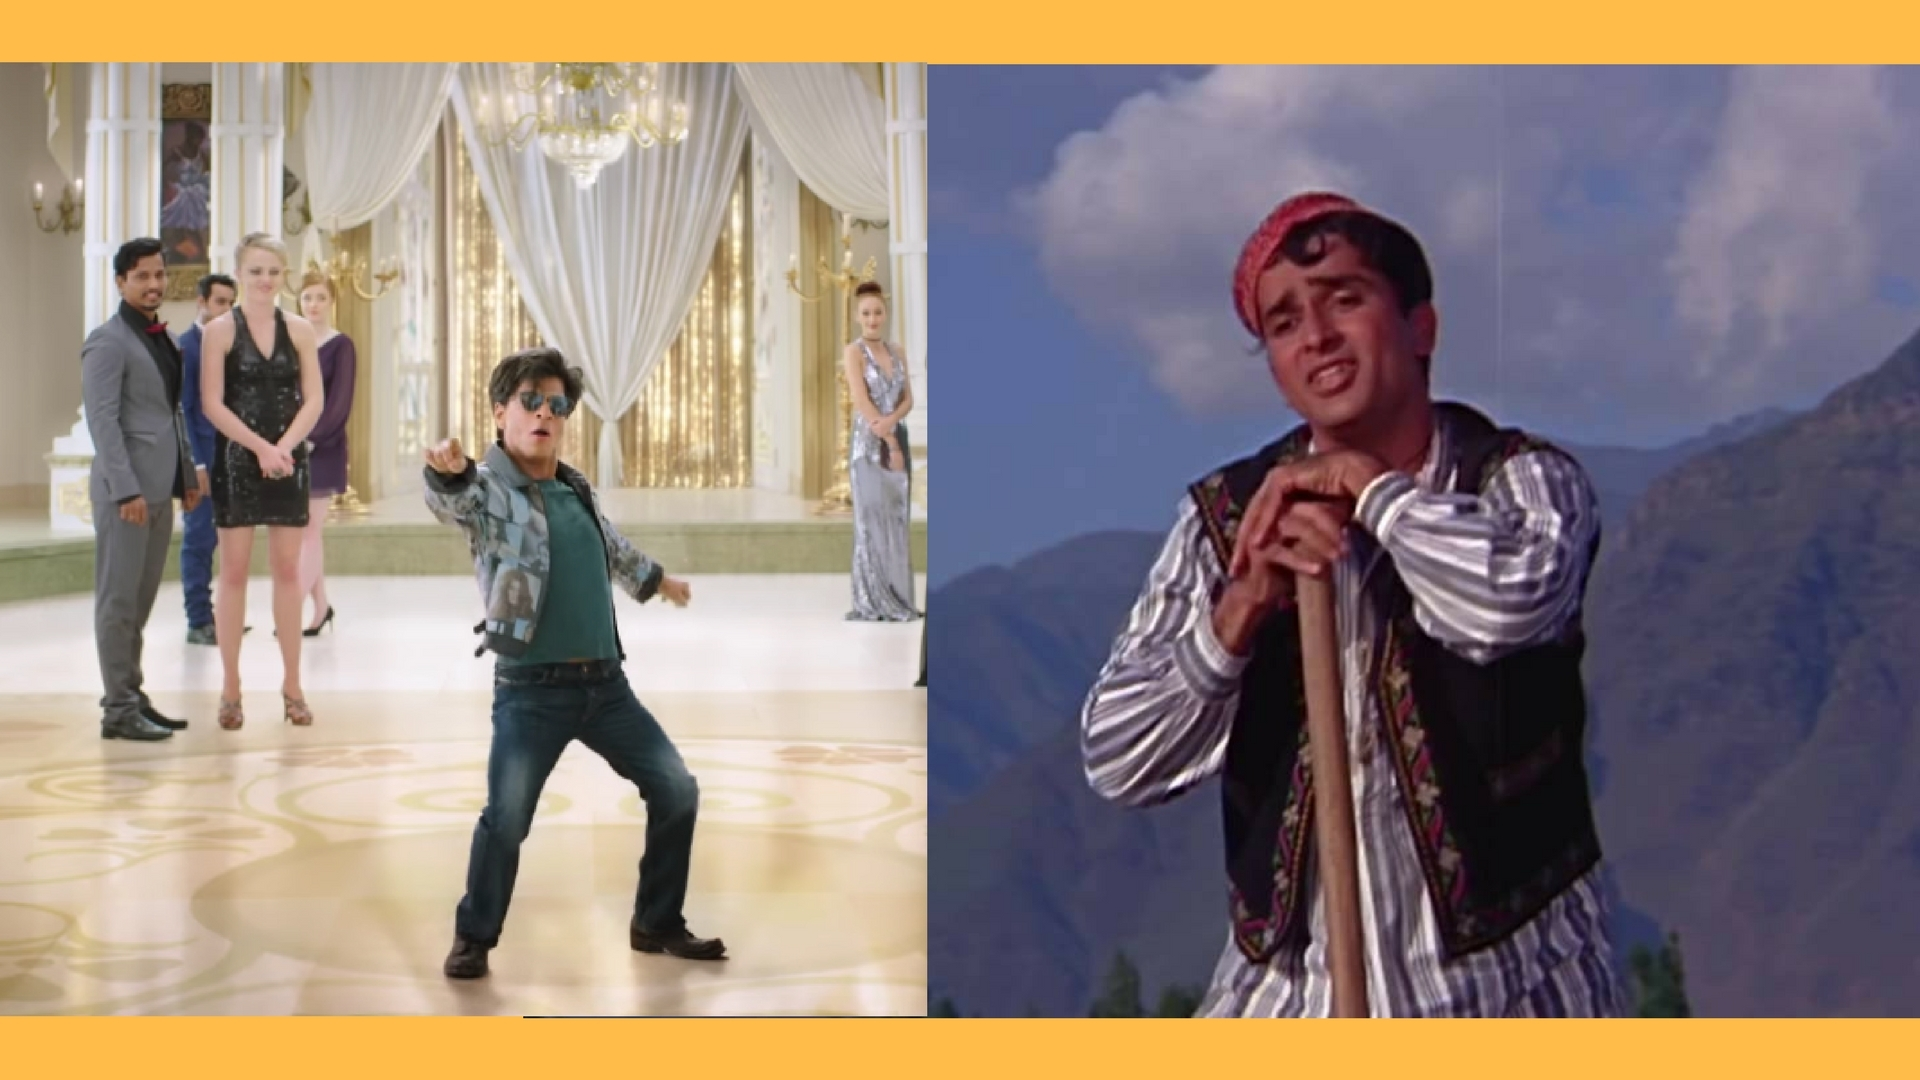 Shashi Kapoor Date Of Dead >> SRK In Shashi Kapoor's Song For 'Zero' a Coincidence: Aanand Rai - The Quint